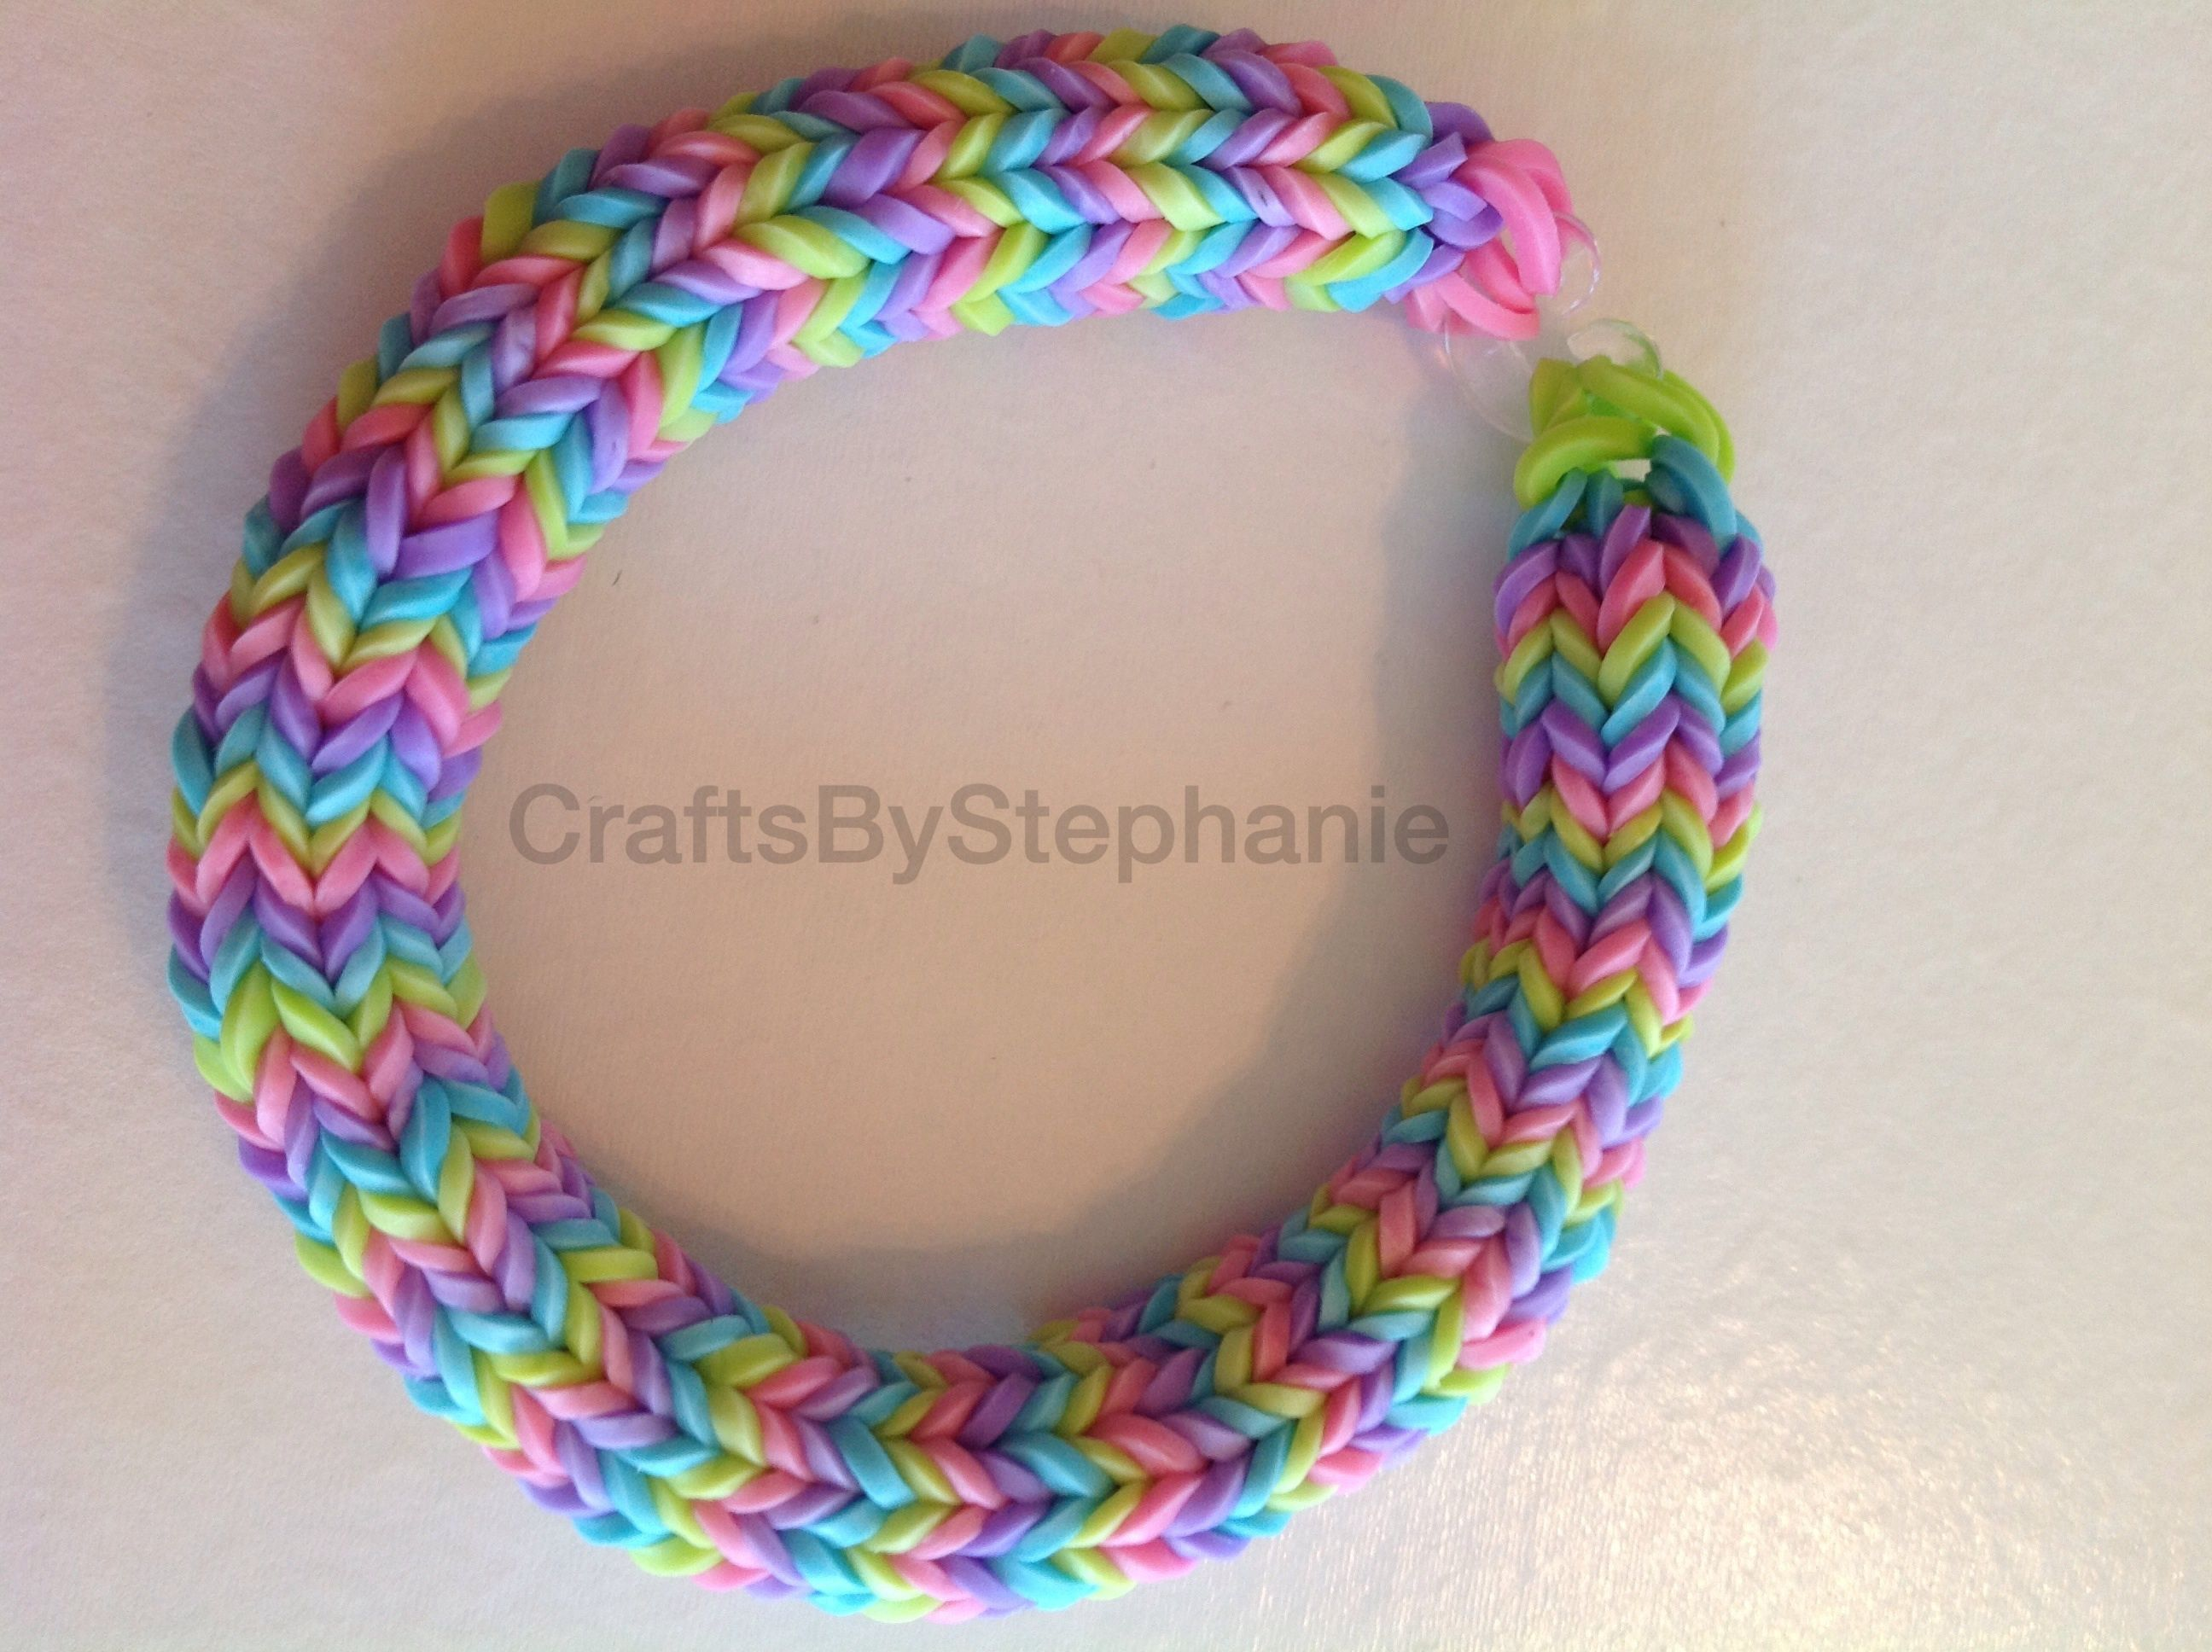 This Is A Green, Blue, Purple, And Pink Colored Bracelet The Colors